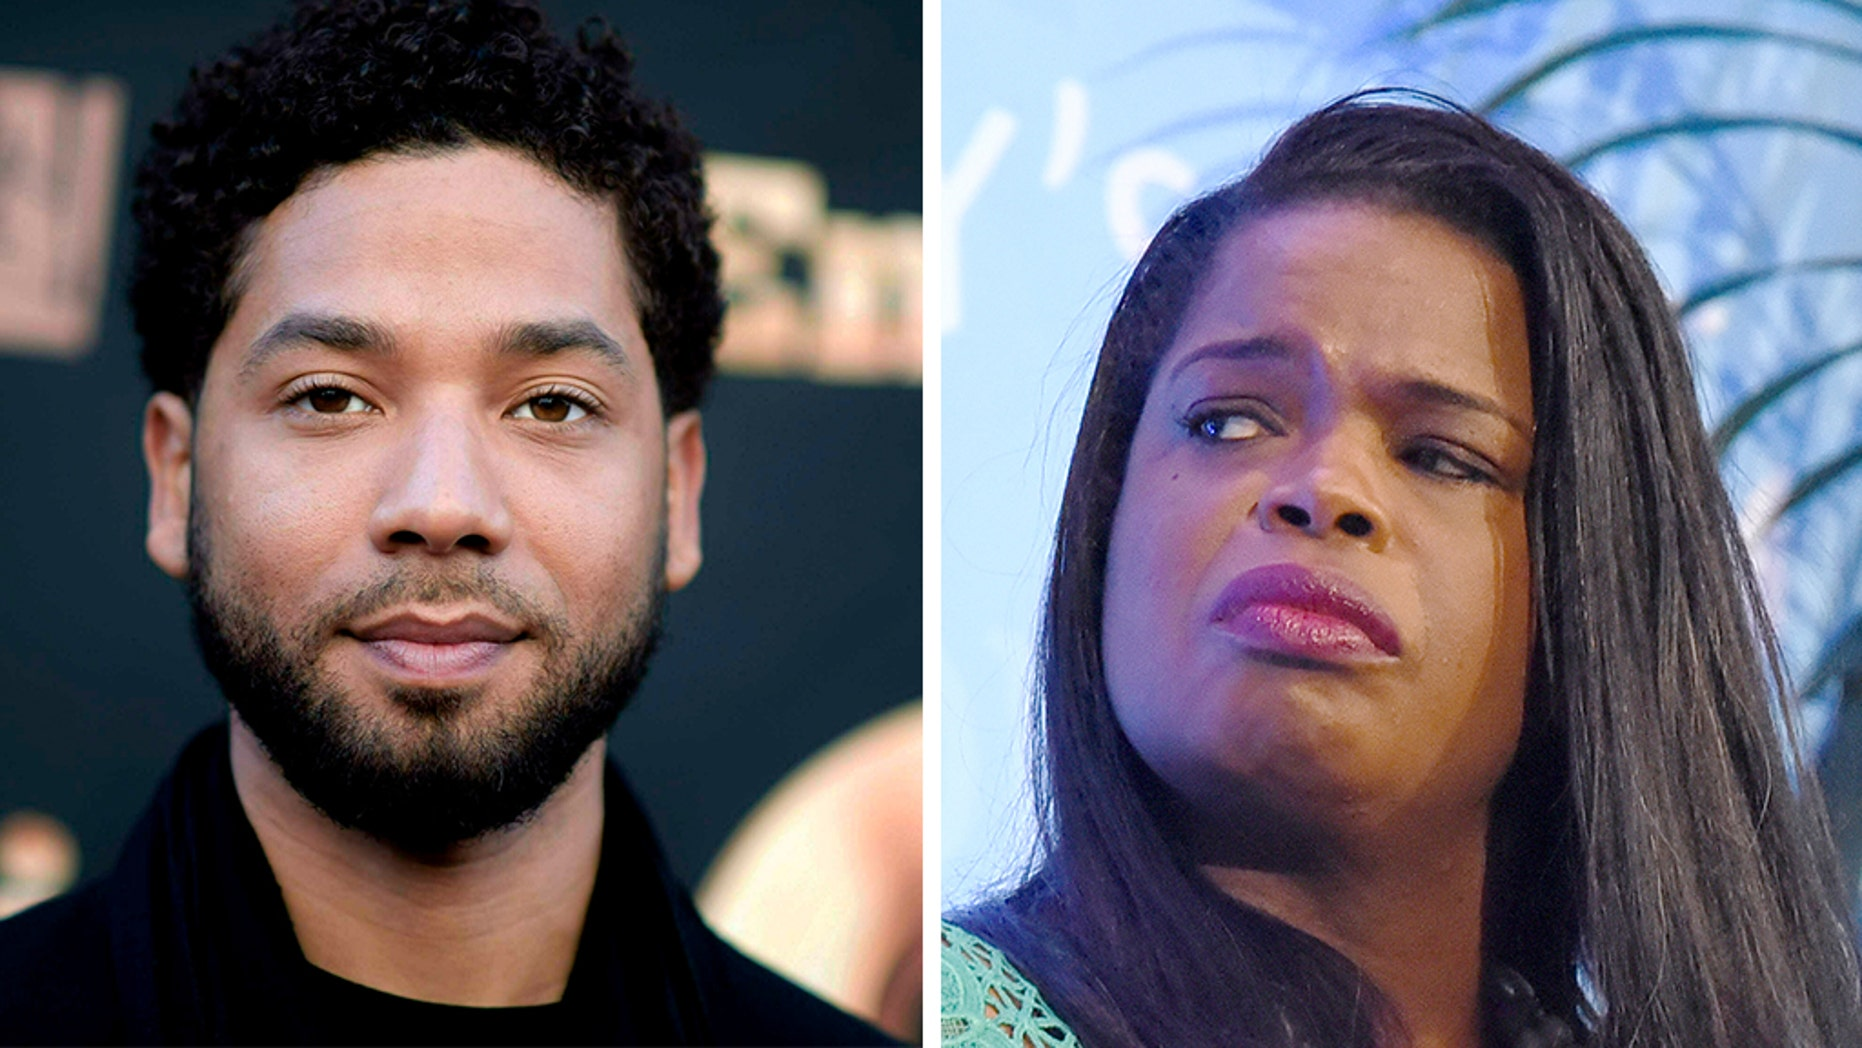 Cook County State's Attorney Kim Foxx has recused herself from the investigation surrounding Jussie Smollet's alleged hate crime attack, Fox News has learned.